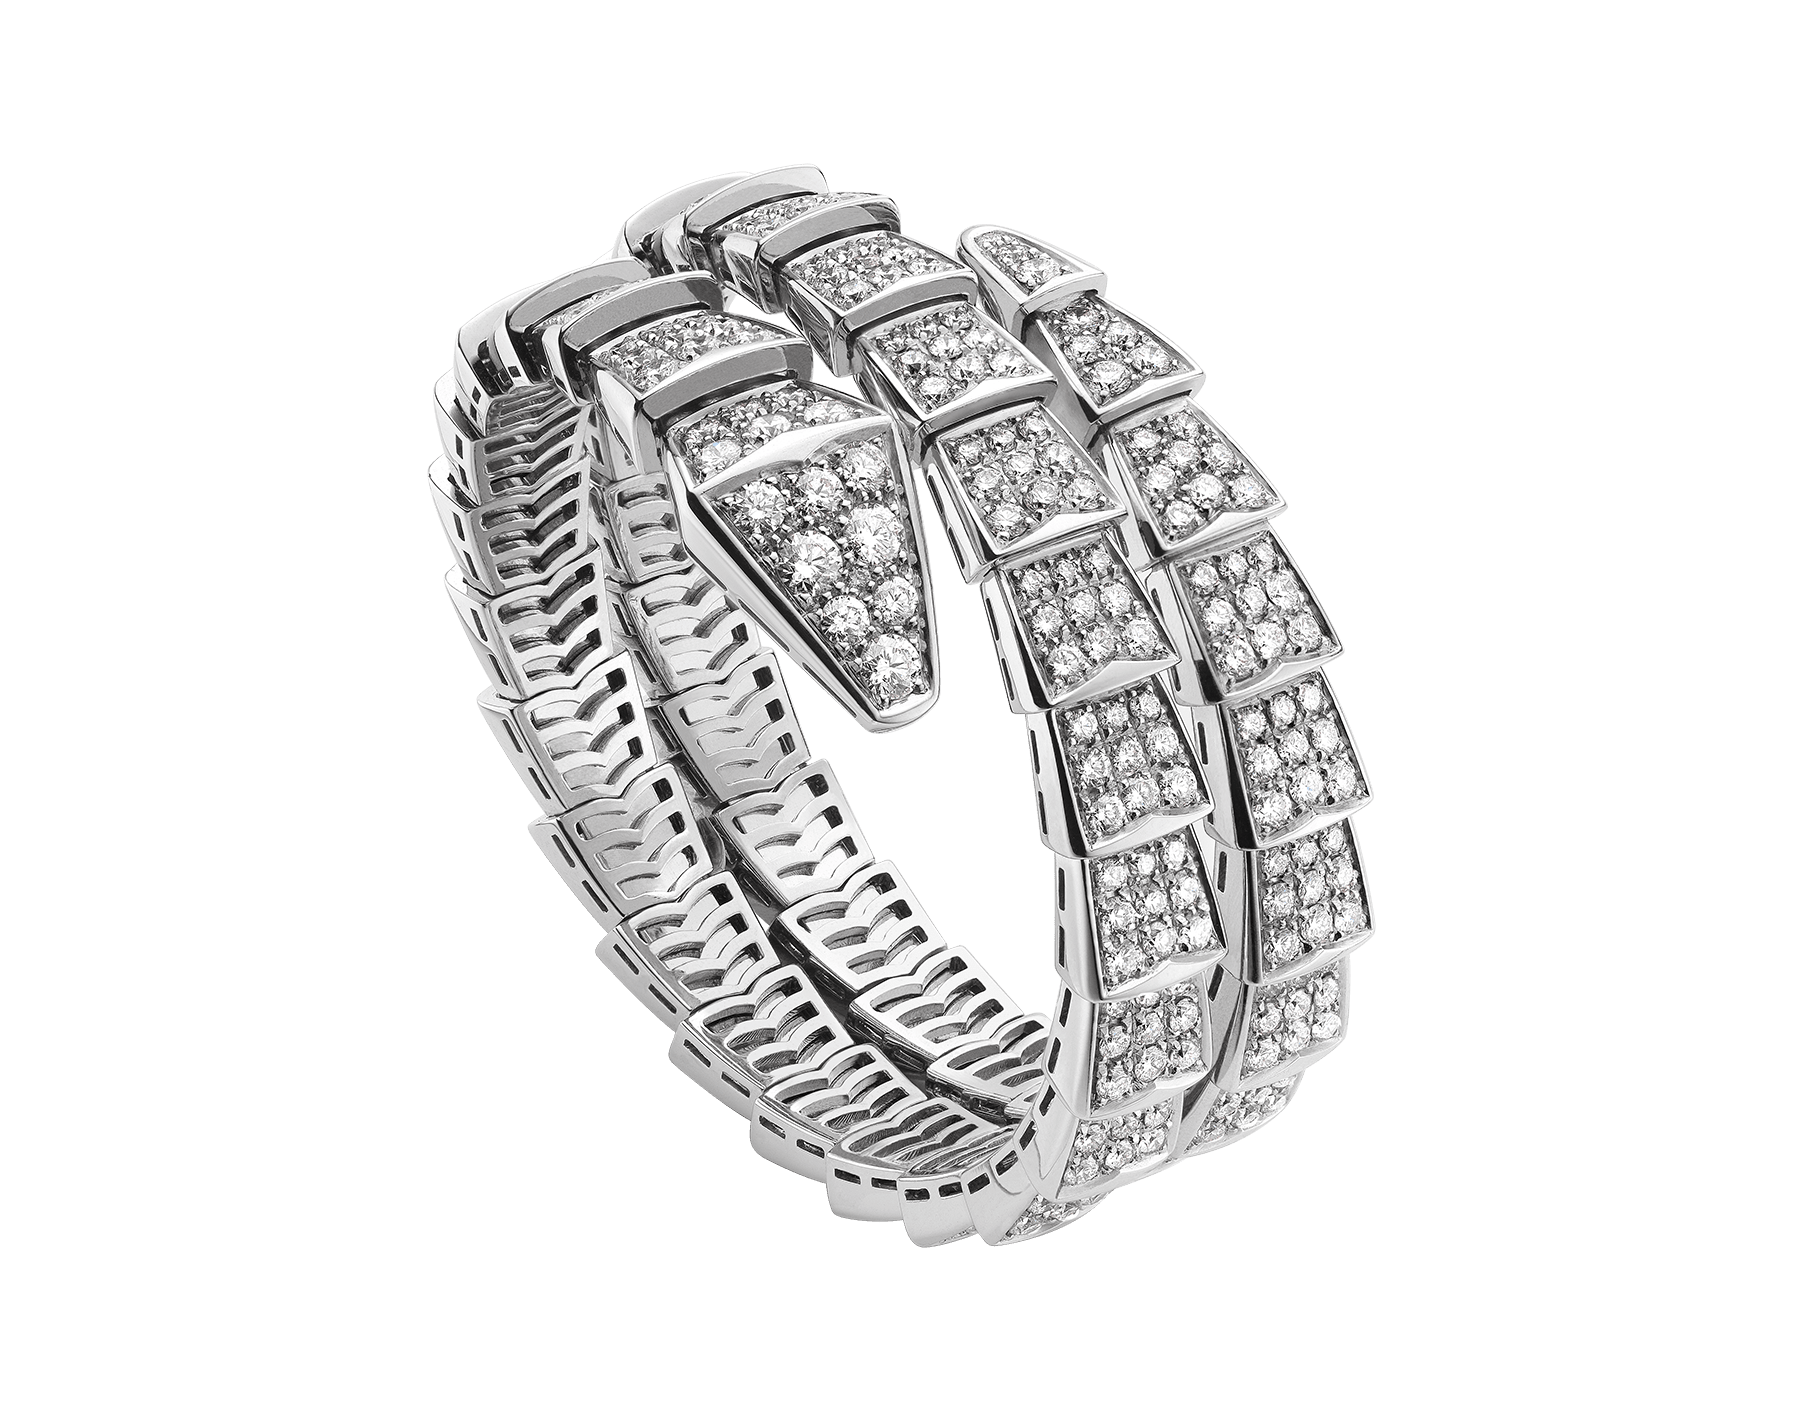 Serpenti two-coil bracelet in 18 kt white gold, set with full pavé diamonds. BR855118 image 1